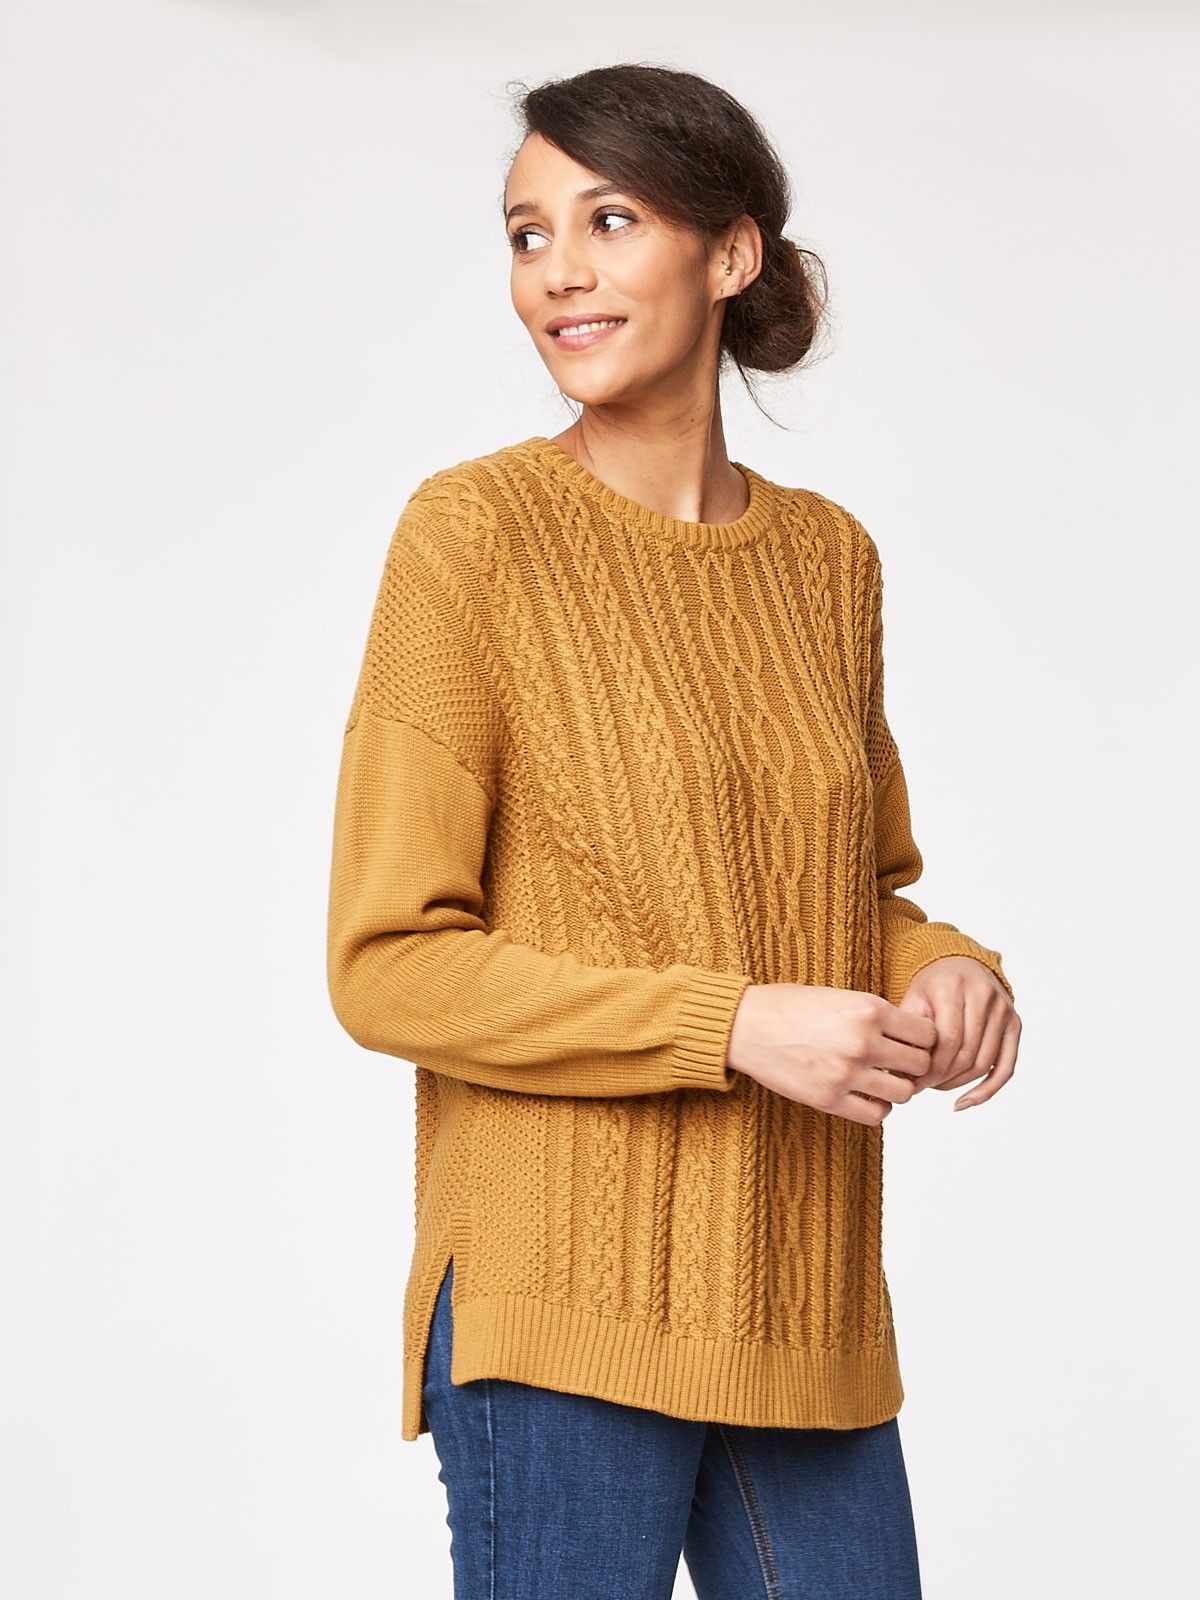 Fairfield Mustard Cable Knit Jumper   wish list clothes ...